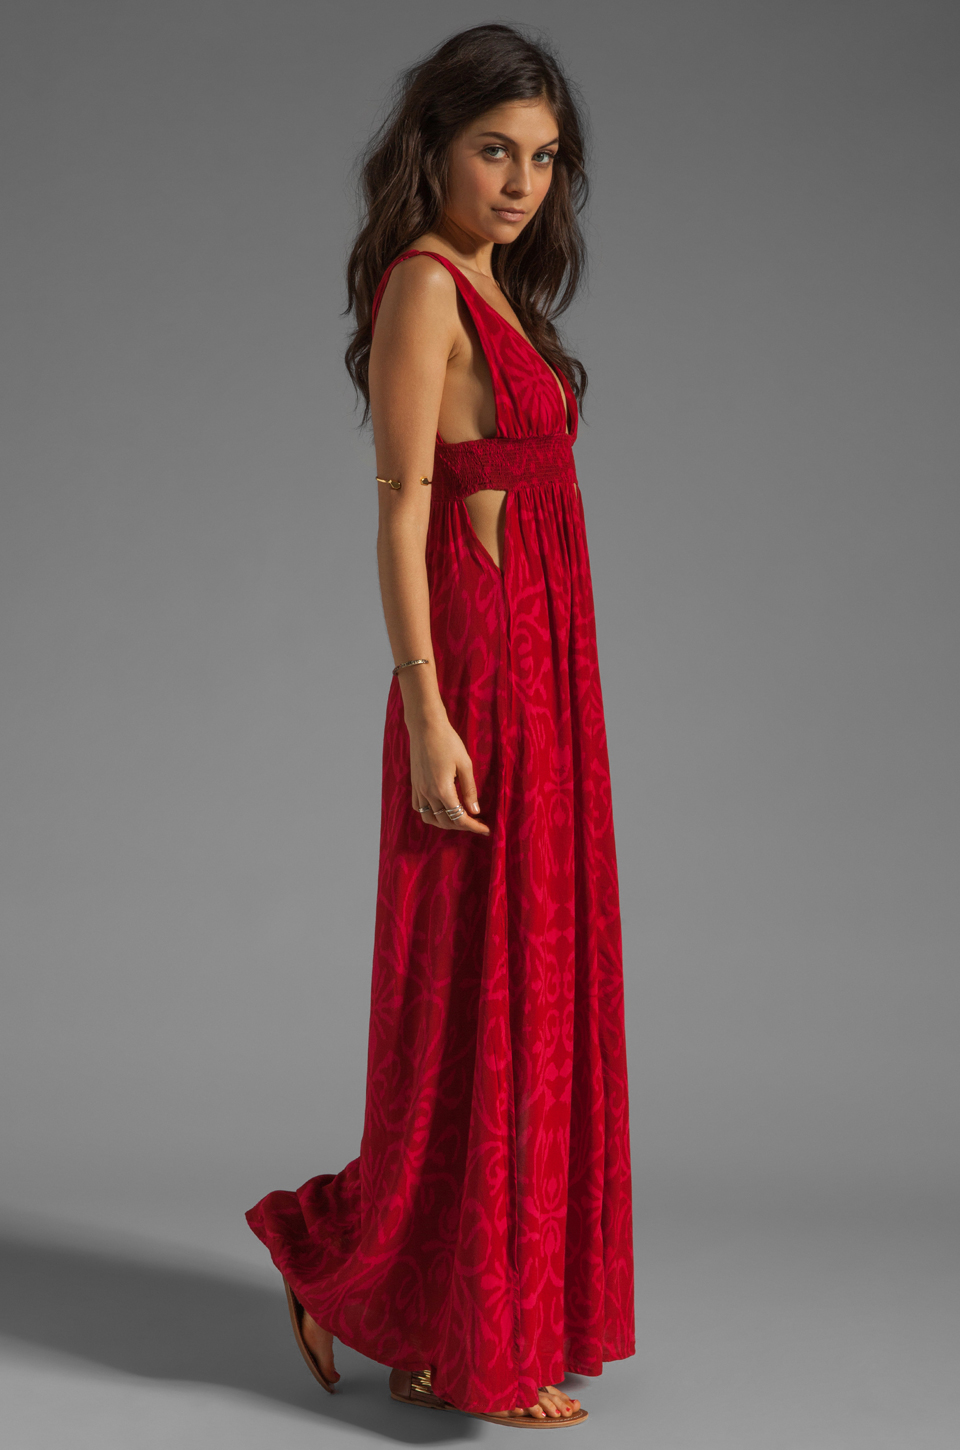 Lyst Indah Anjeli Empire Maxi Dress In Antik Red In Red